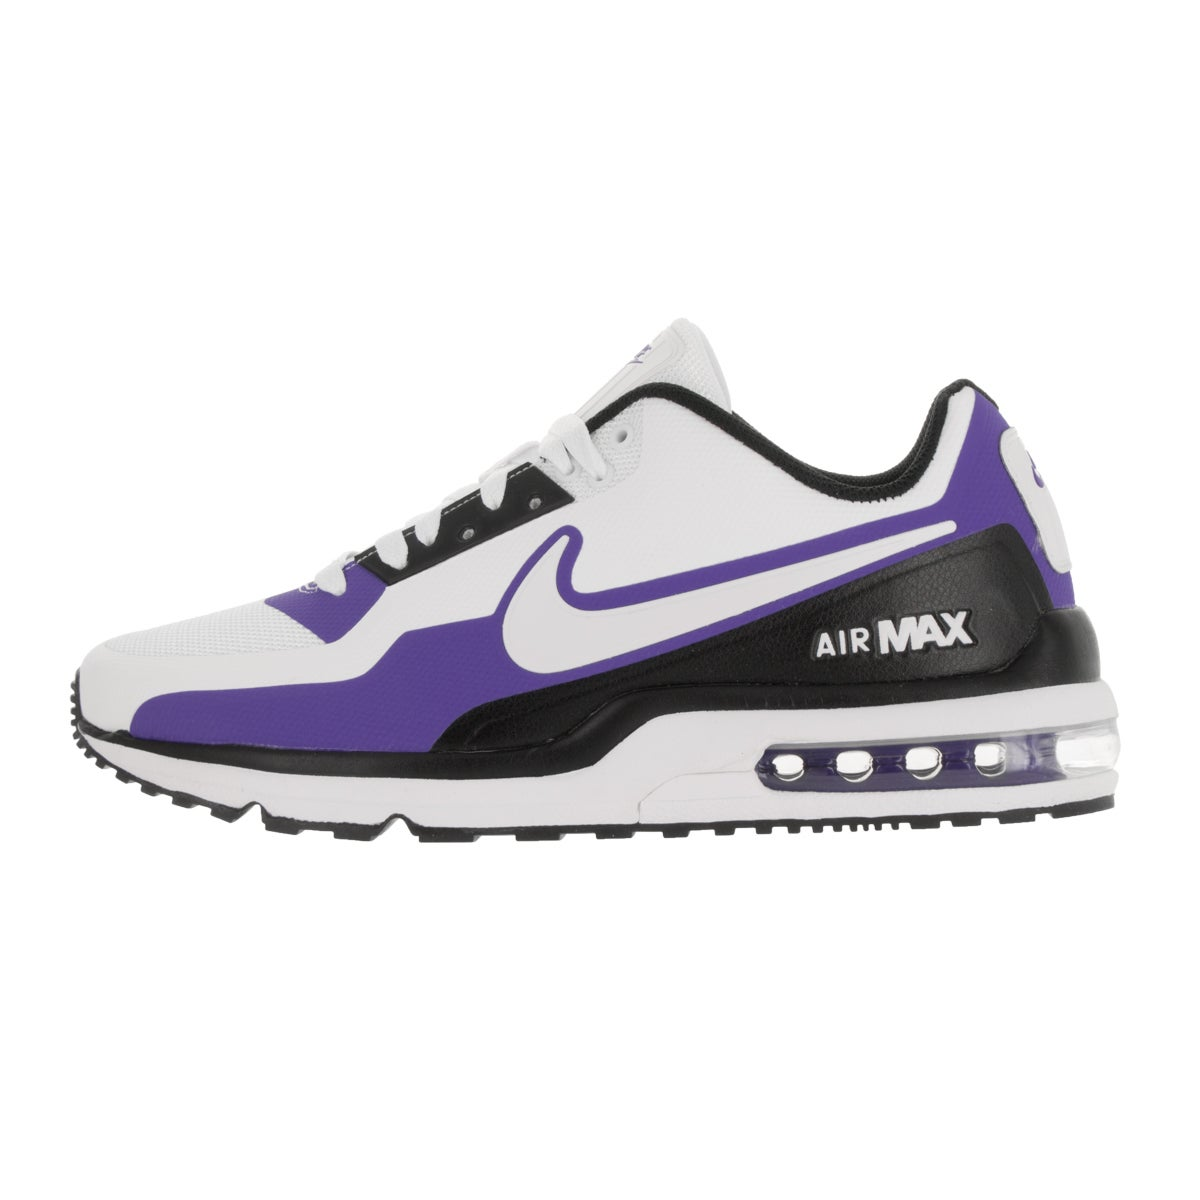 68389a51d8d Shop Nike Men s Air Max LTD 3 Mod White White Black Prsn Violet Running Shoe  - Free Shipping Today - Overstock - 13394861 - 8